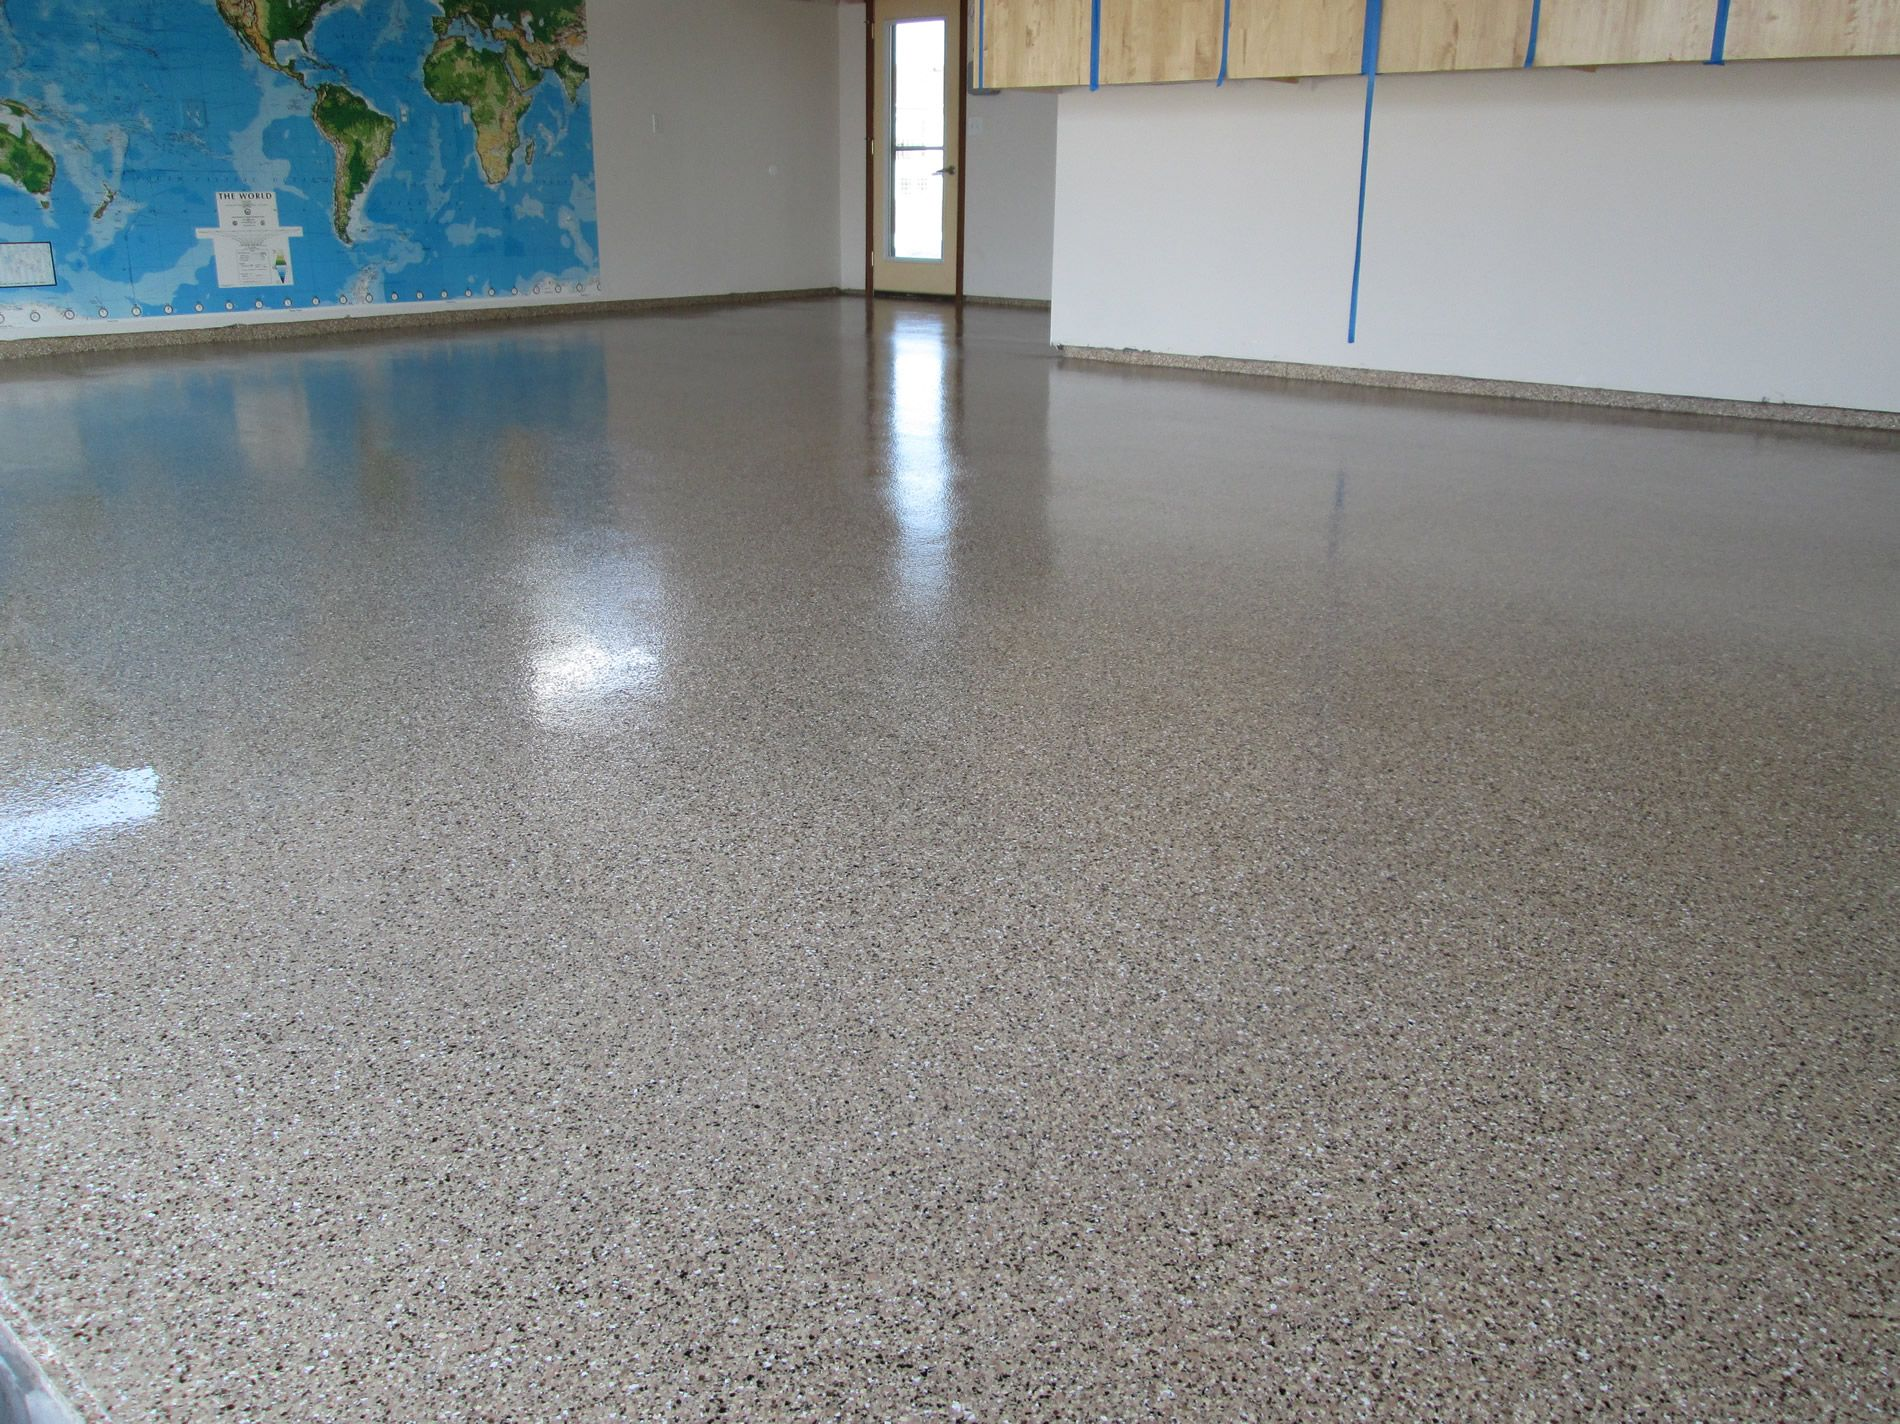 oleum xfile coating the and trend kit rustoleum style for garage use uncategorized best floor pics to how porch epoxyshield floors epoxy rust